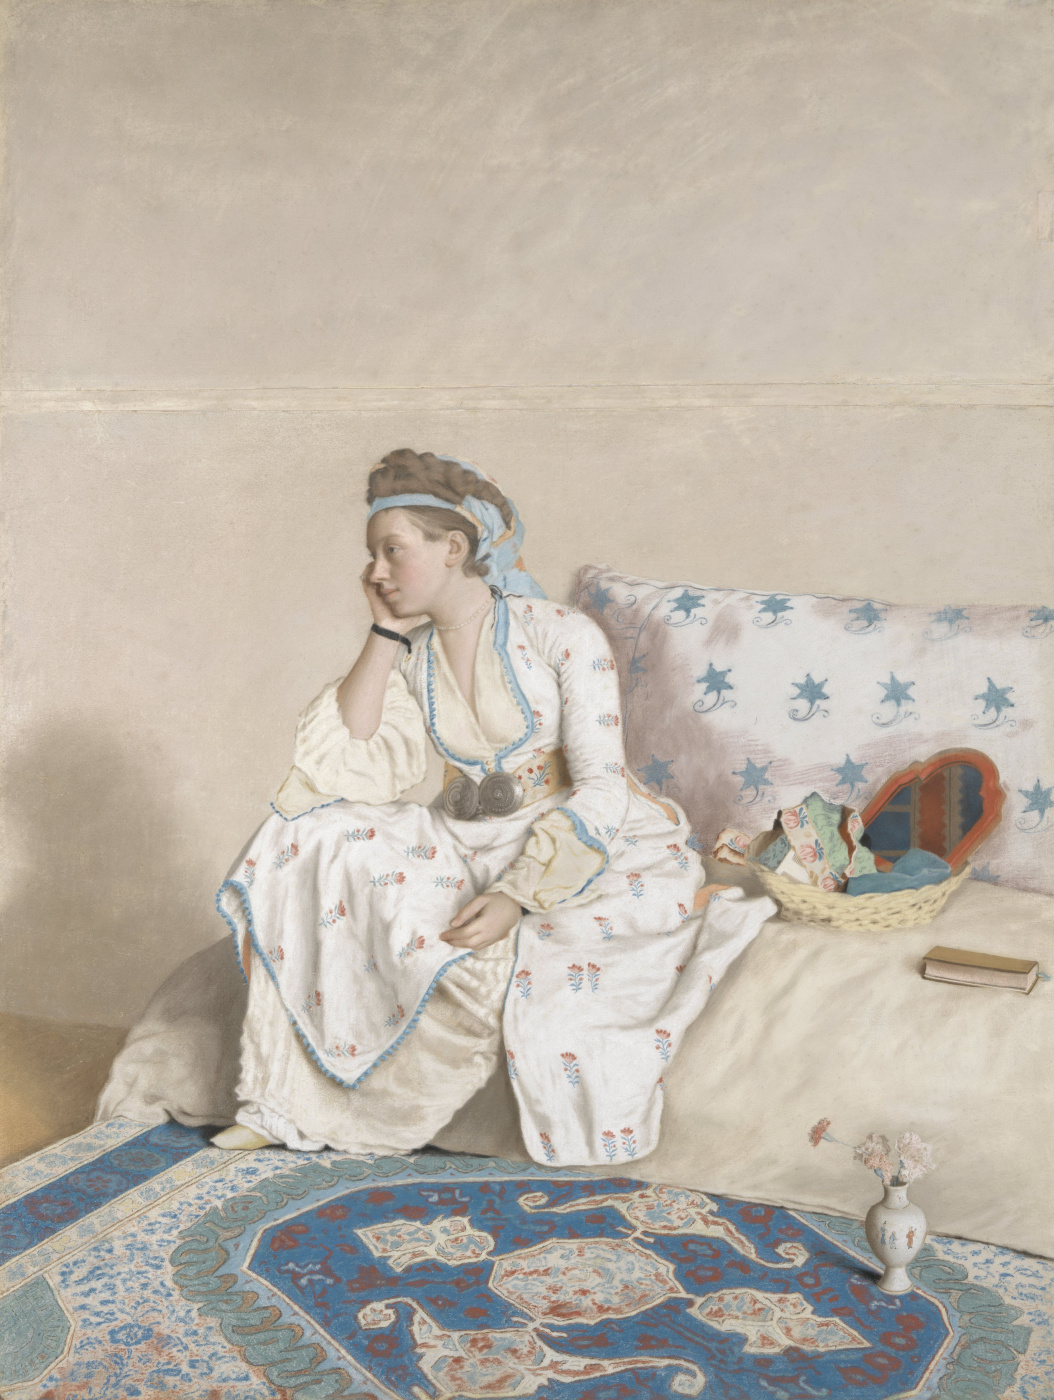 Jean-Etienne Liotard. Portrait of Marie Fargues, the artist's wife, in Turkish costume